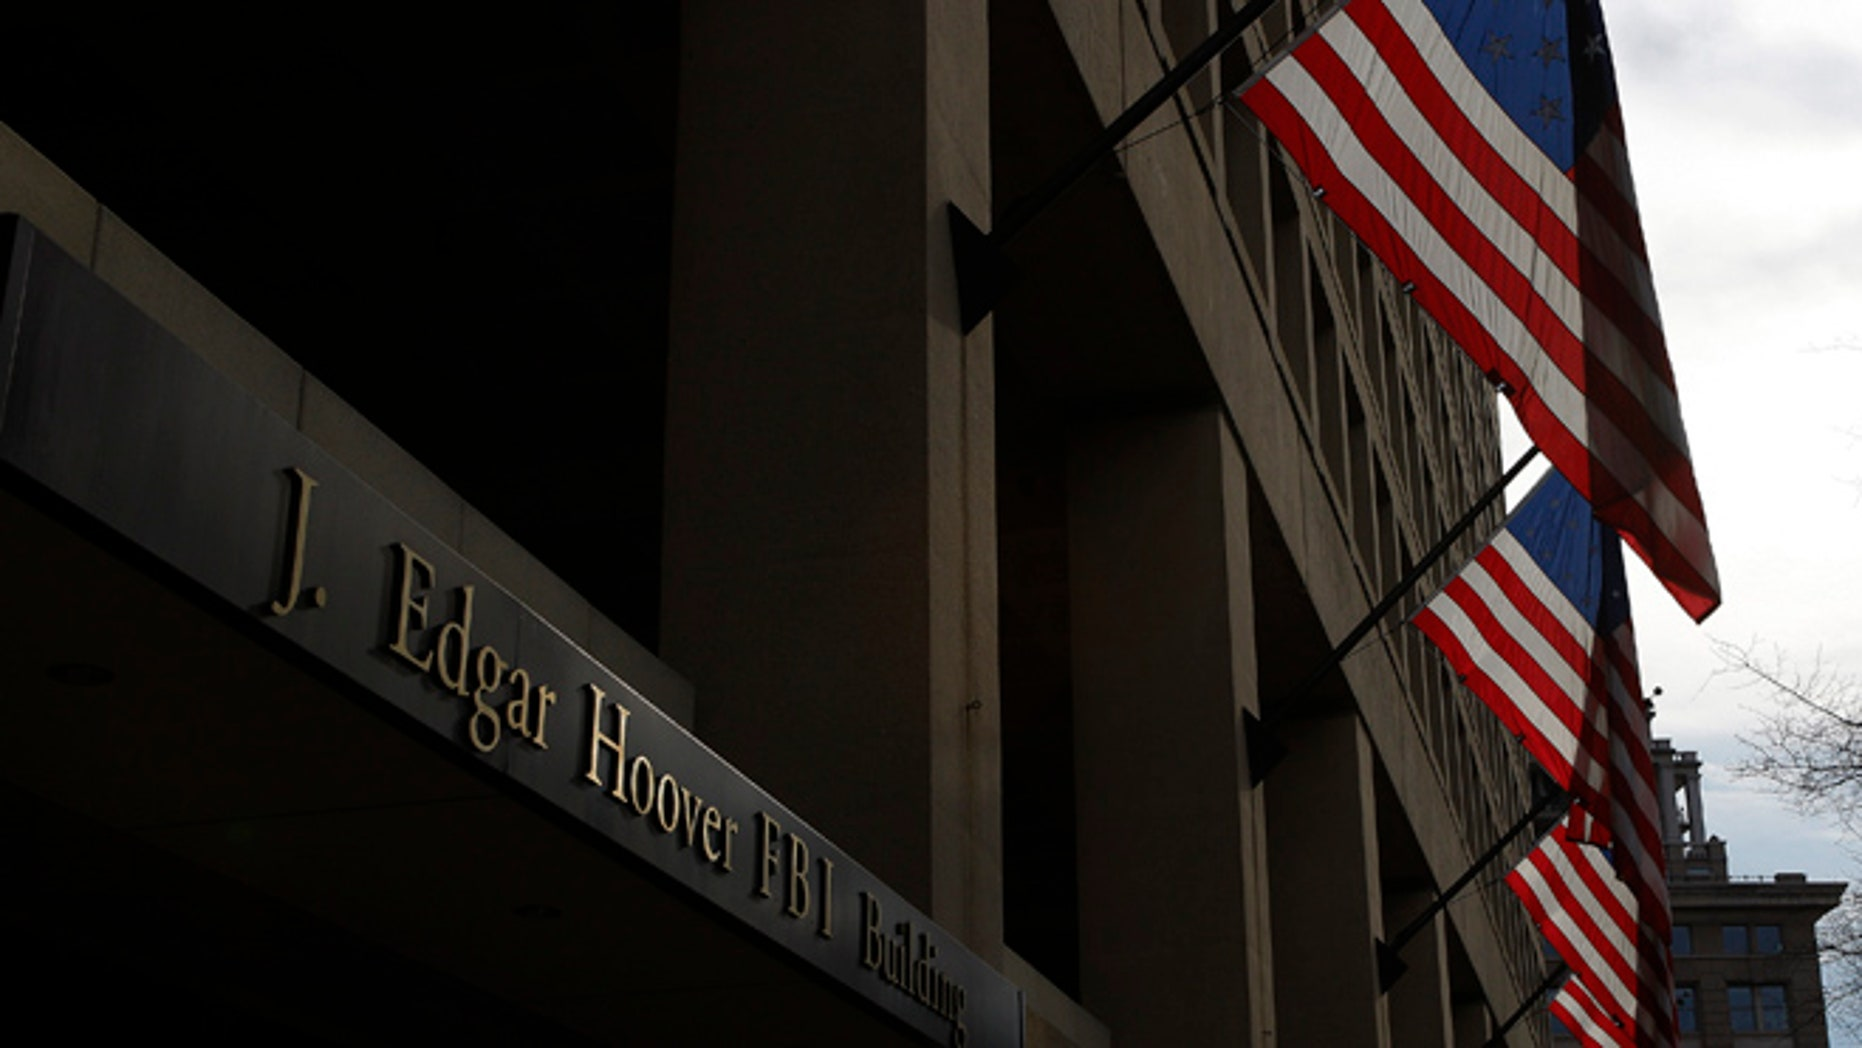 FILE: UNDATED: The main headquarters of the FBI, the J. Edgar Hoover Building, in Washington, D.C.